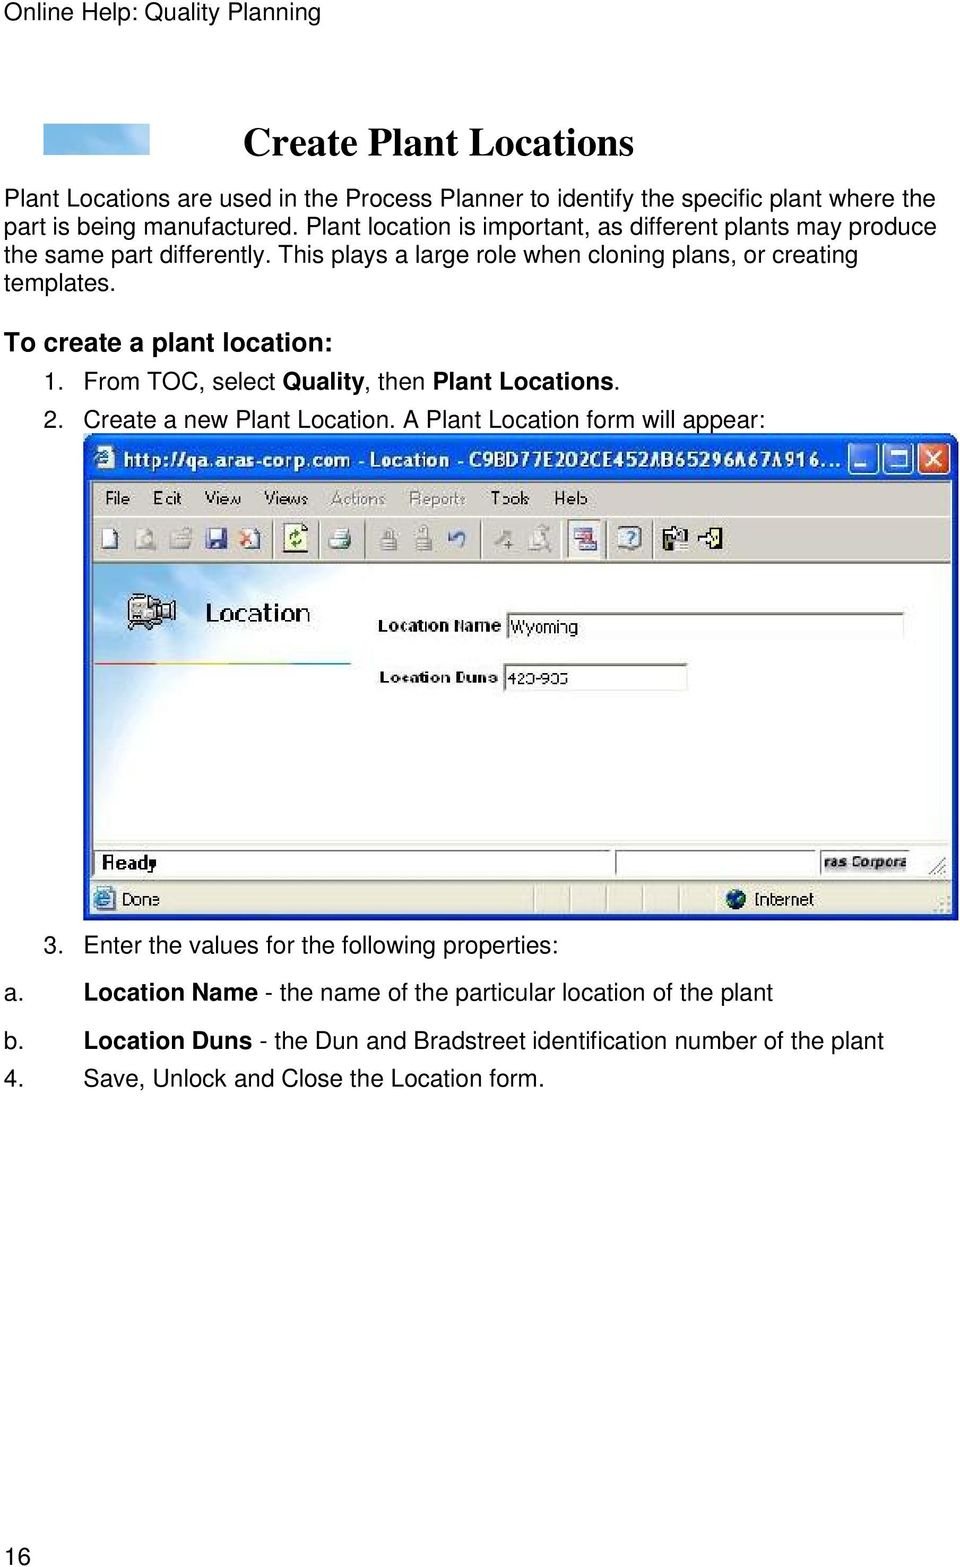 To create a plant location: 1. From TOC, select Quality, then Plant Locations. 2. Create a new Plant Location. A Plant Location form will appear: 3.